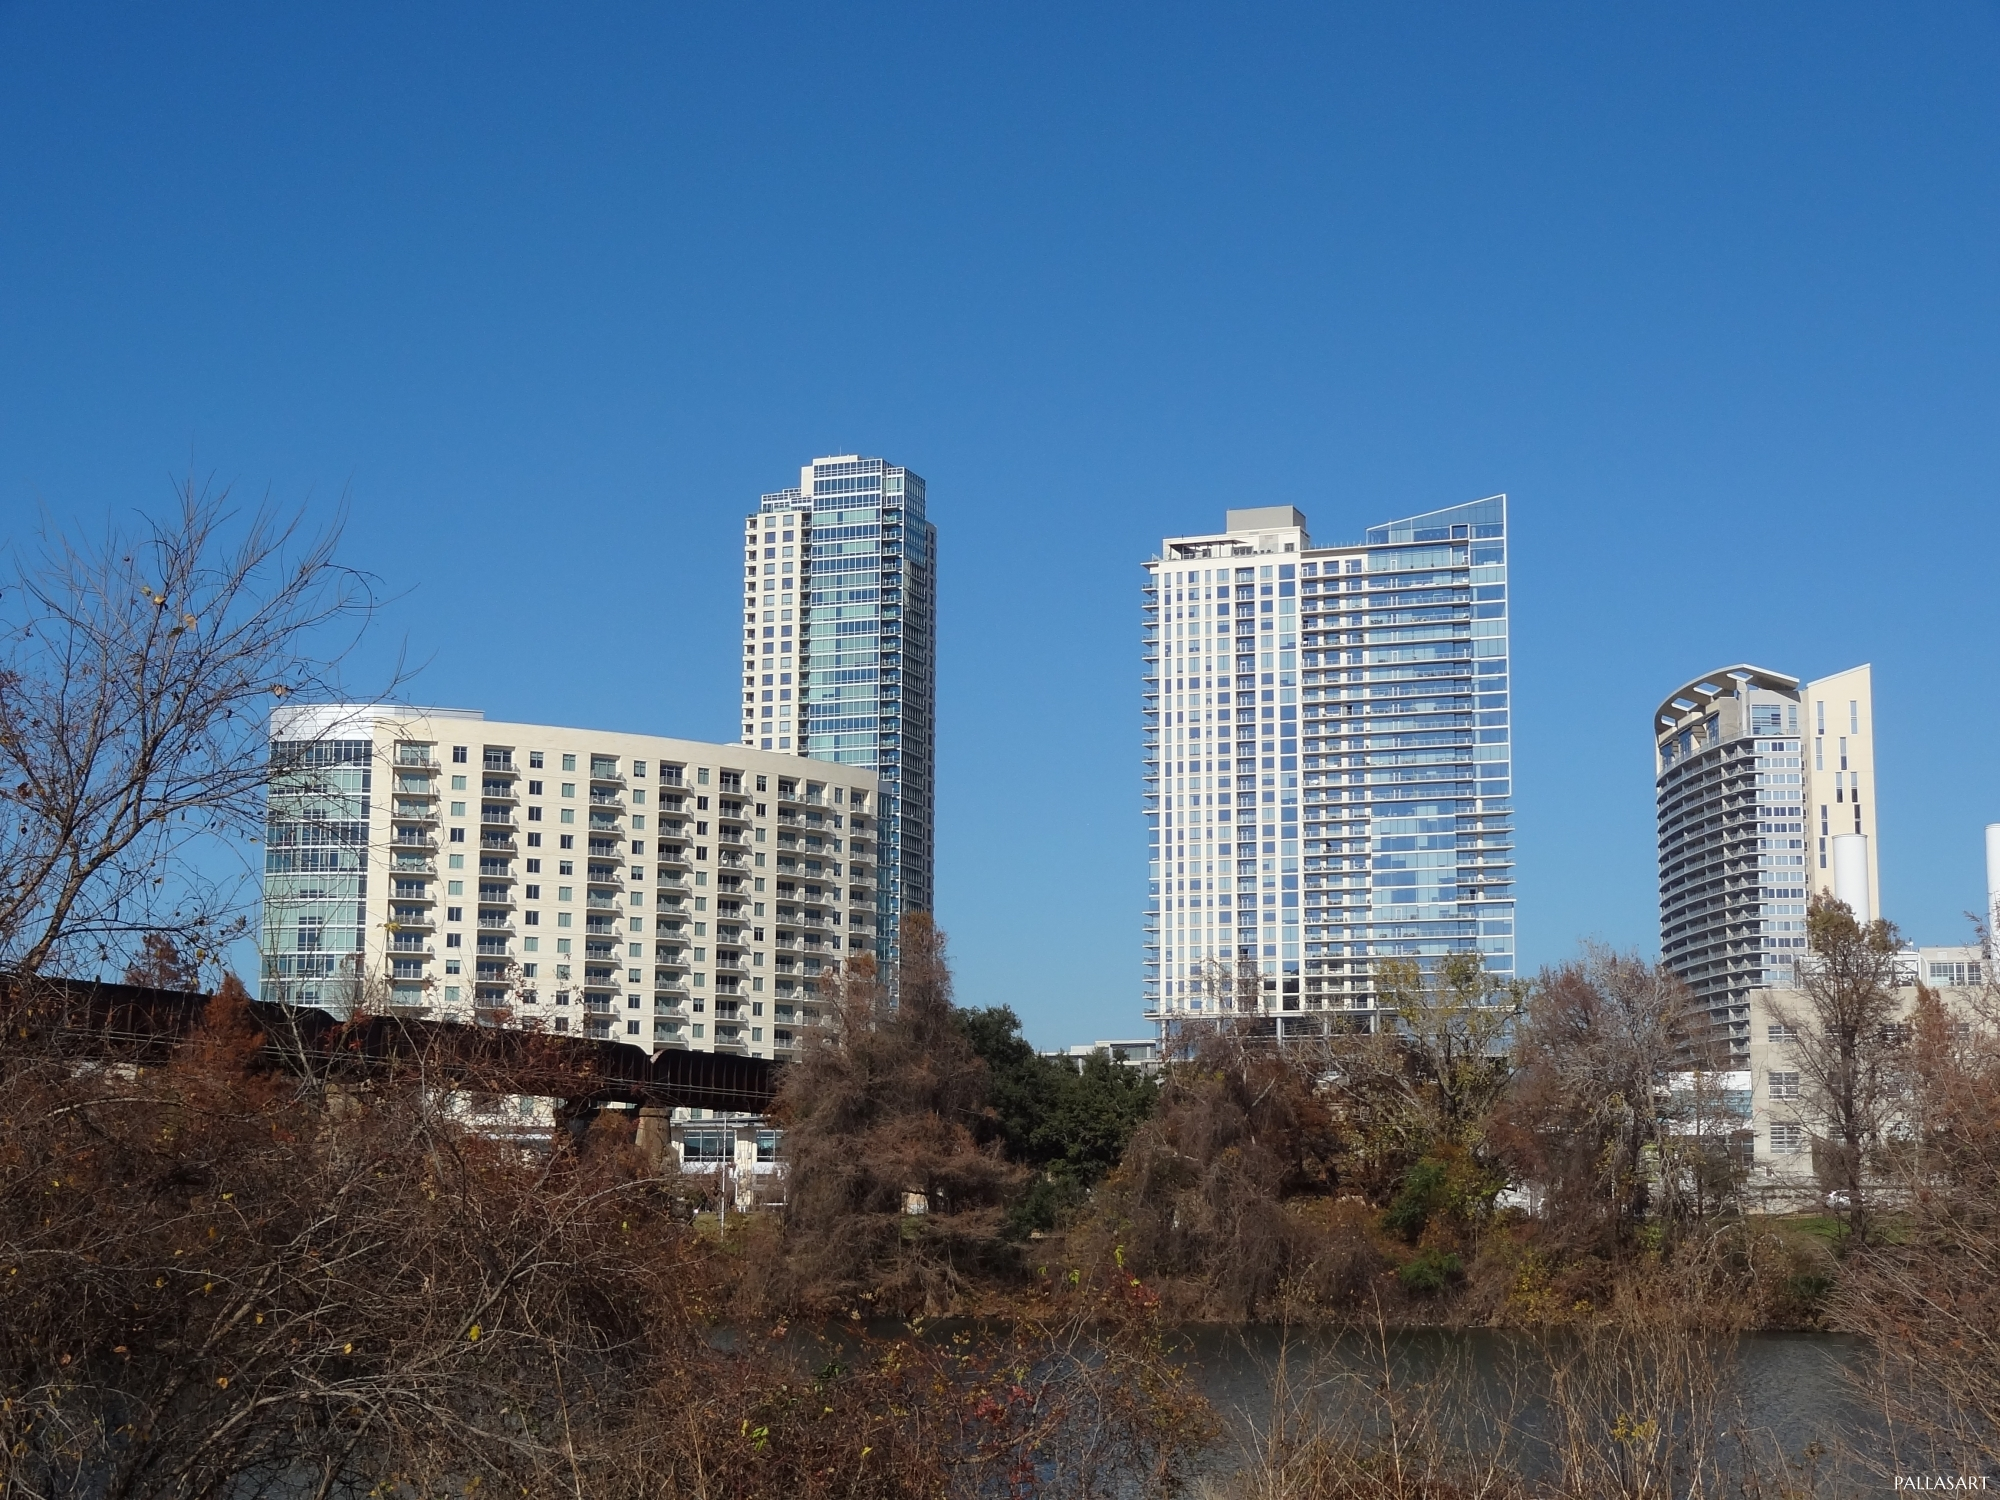 Residential skyscrapers on West Side of Downtown Austin, Texas